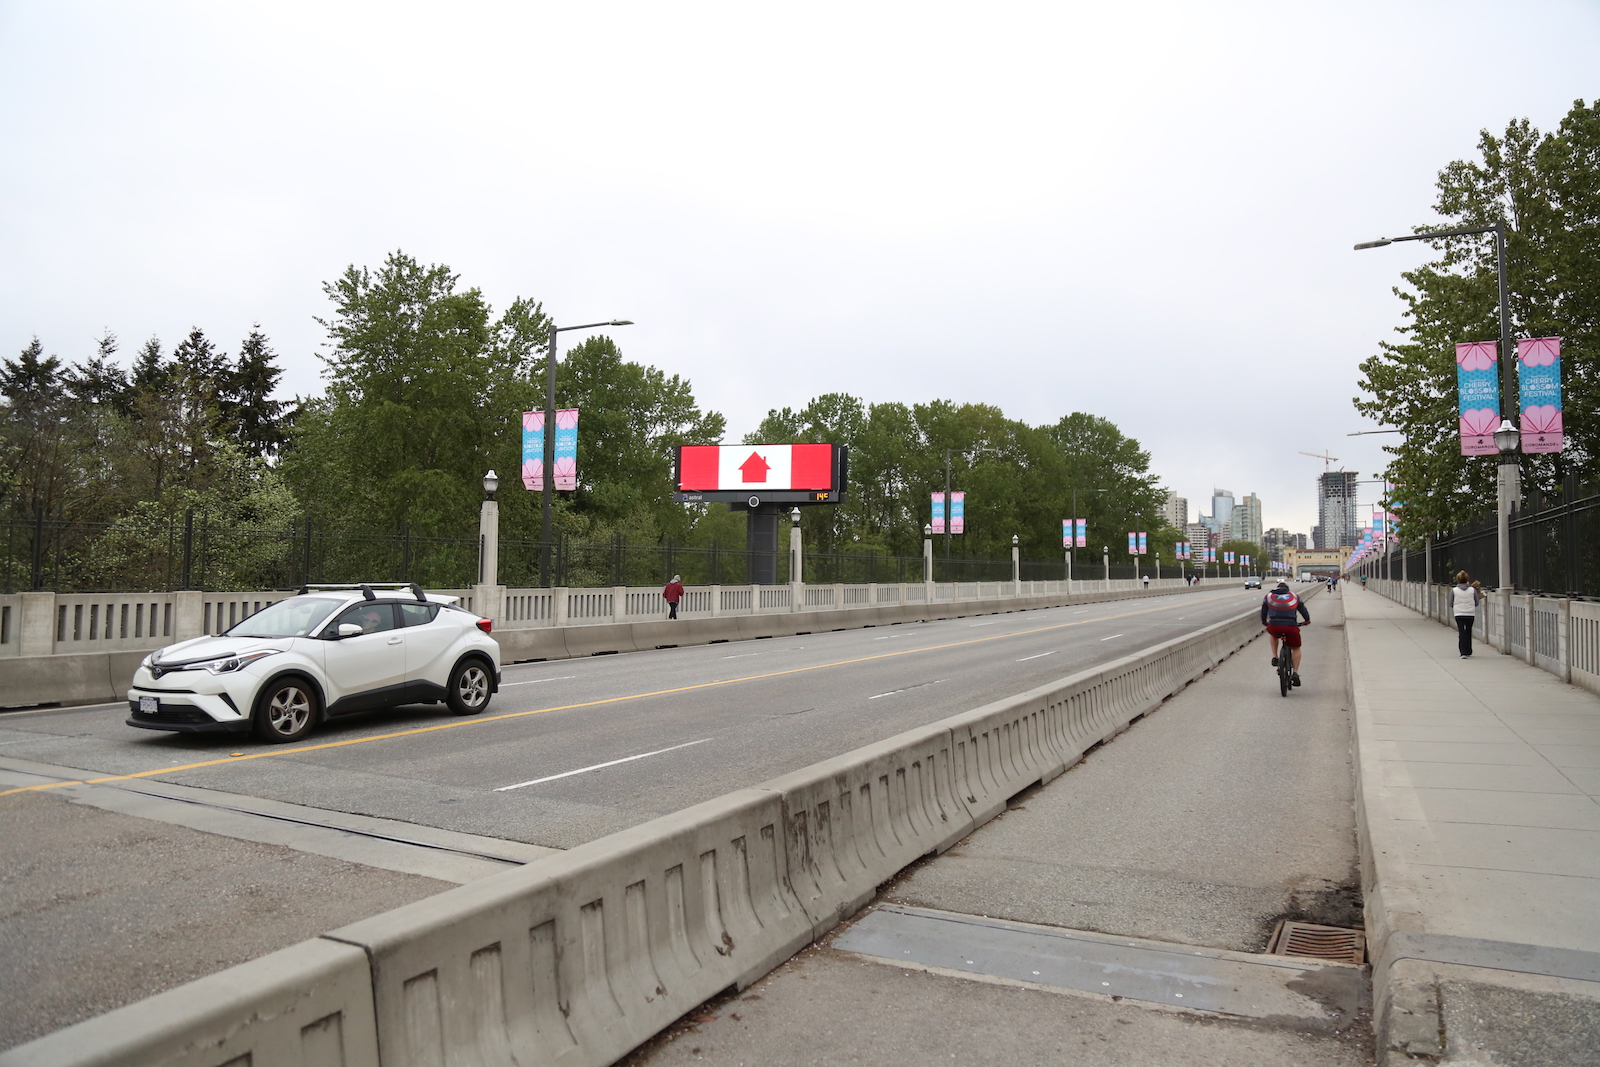 a single white car zooms on the other side of a protected bike lane with one rider. A billboard with an adaptation of the Canadian flag glows on the side of the road